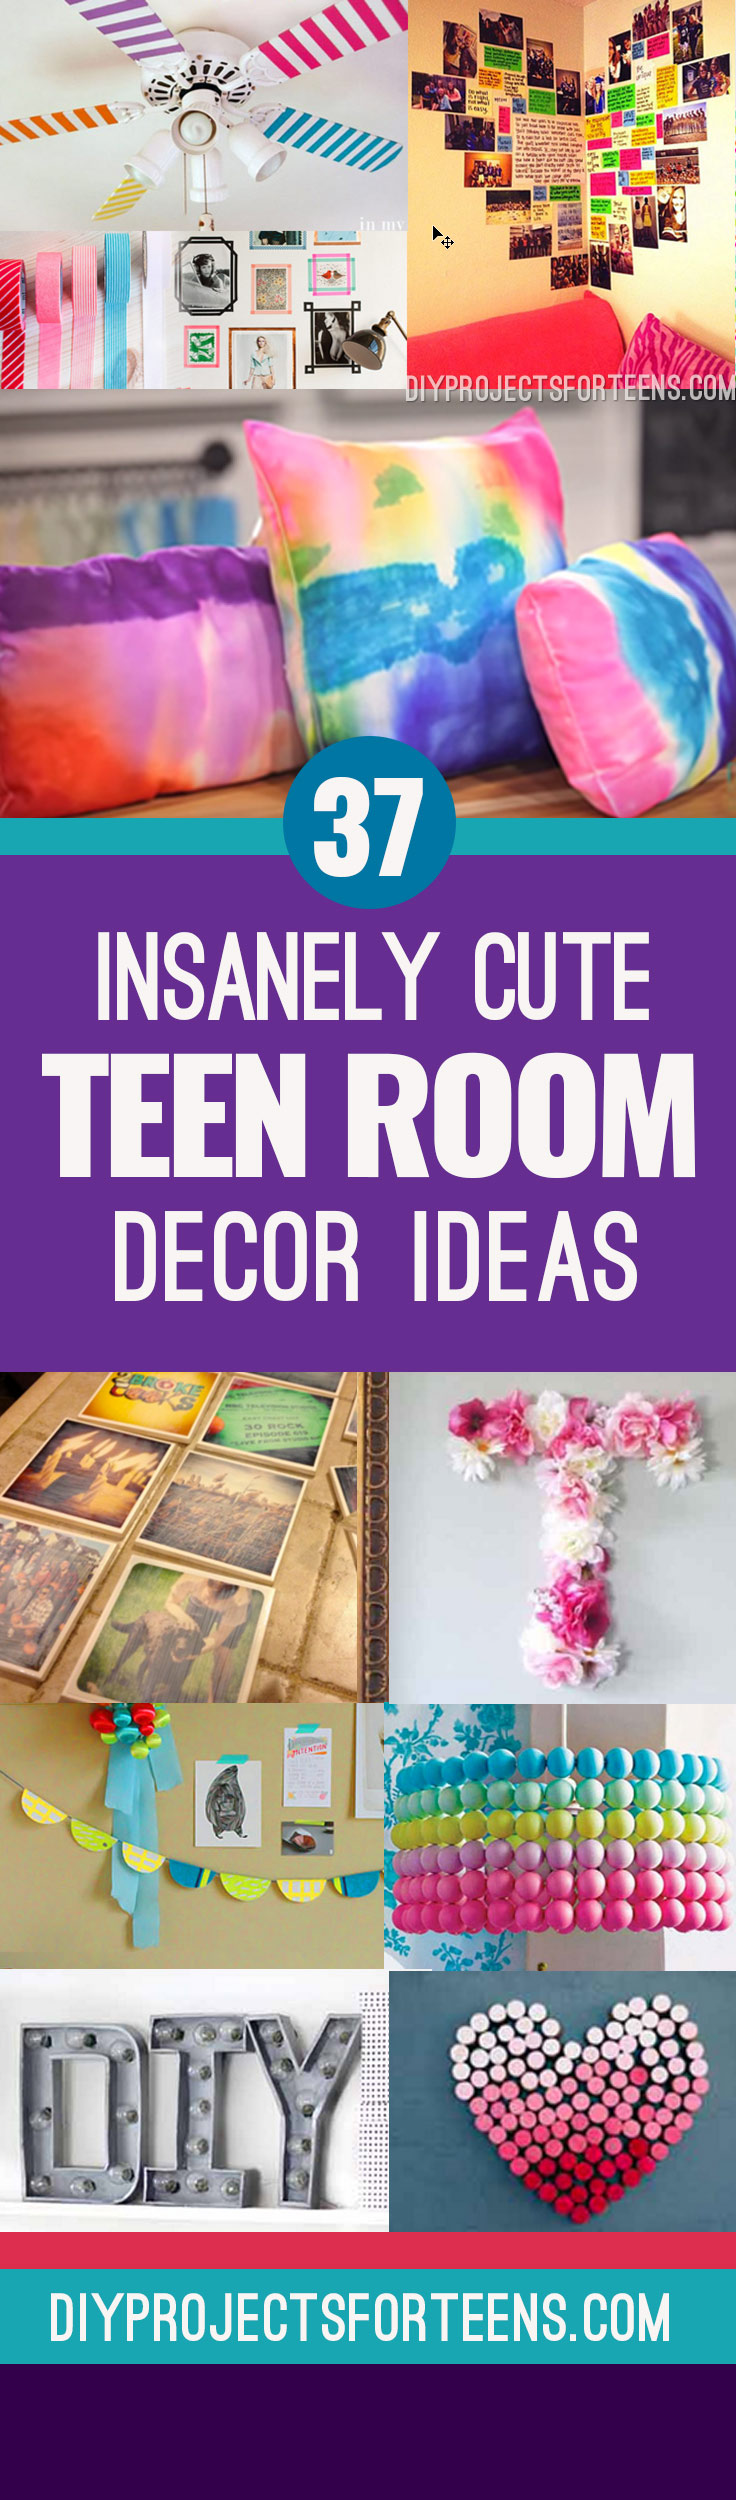 Bedroom decor ideas for girls - Cute Diy Room Decor Ideas For Teens Best Diy Room Decor Ideas From Pinterest